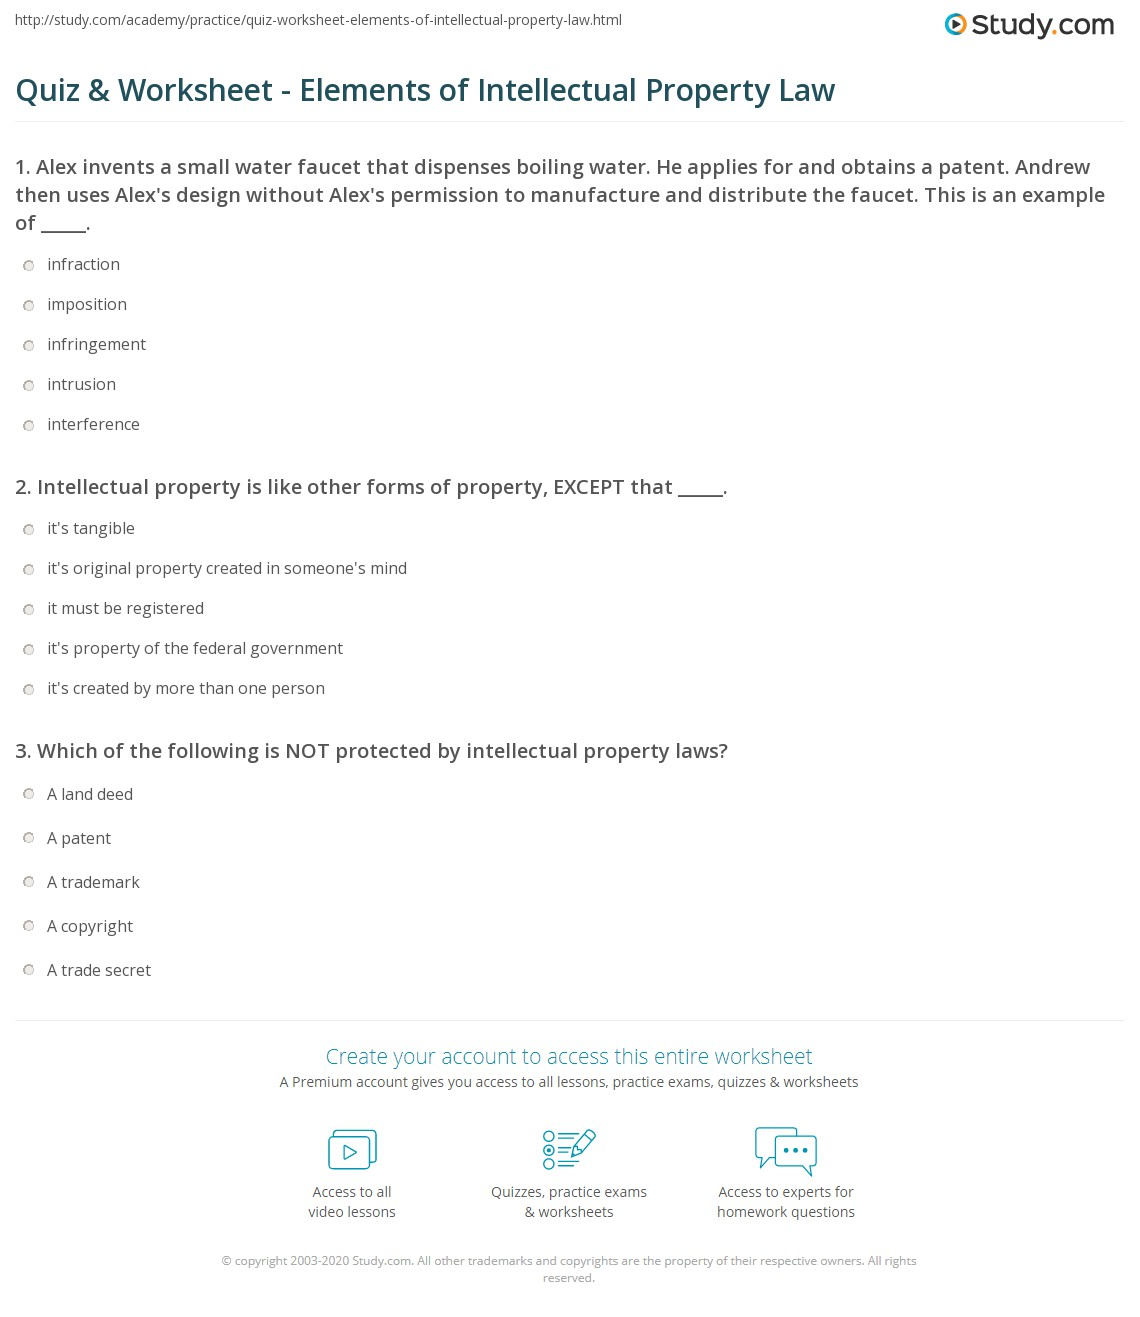 quiz & worksheet - elements of intellectual property law | study